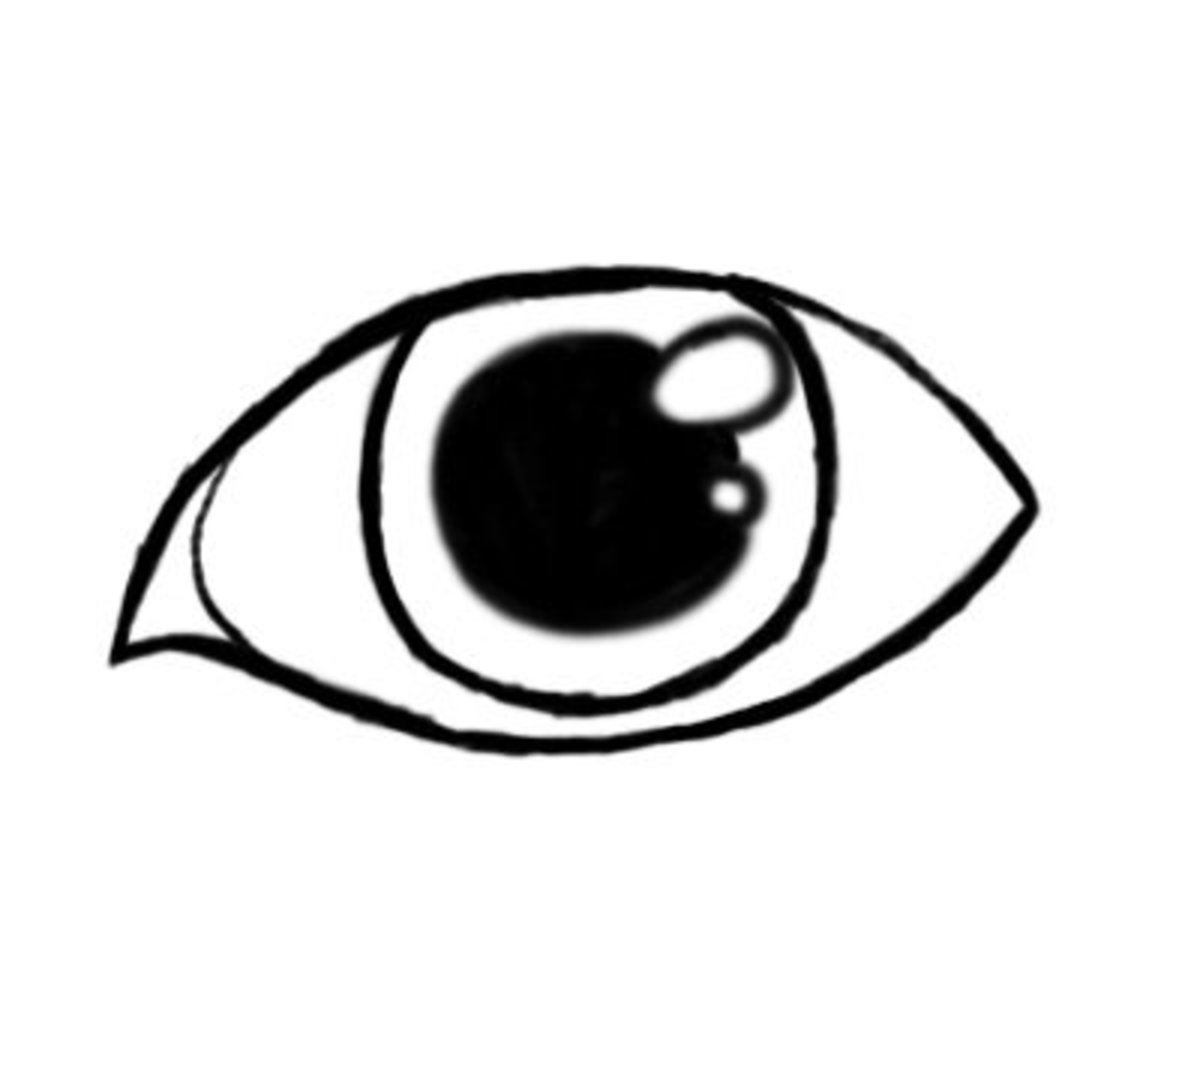 Start drawing the little details like the pupil (black in the center and the eye glare.